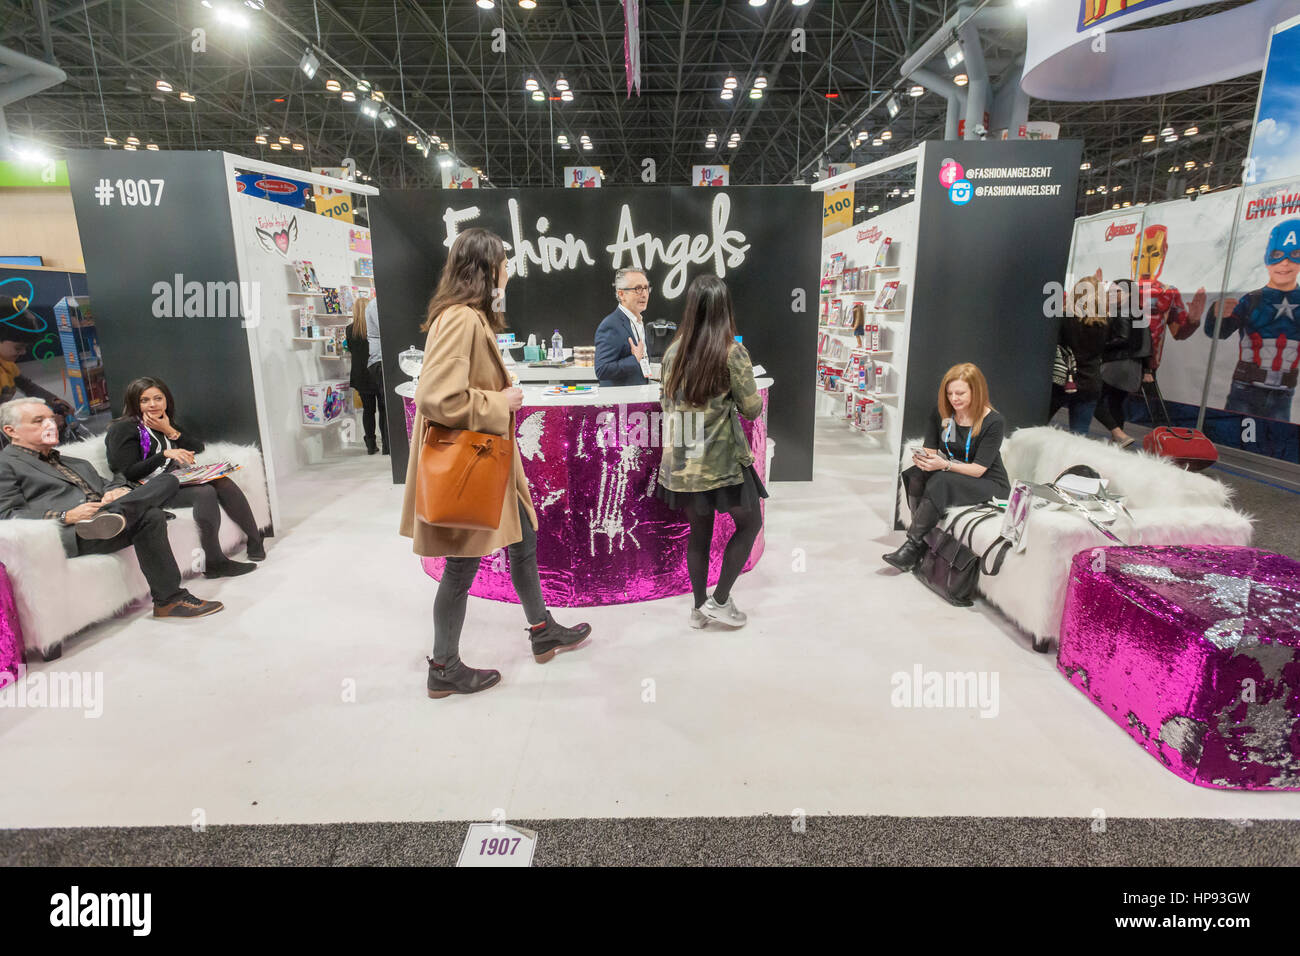 New York Usa 19th Feb 2017 Fashion Angels Booth At The 114th Stock Photo Alamy